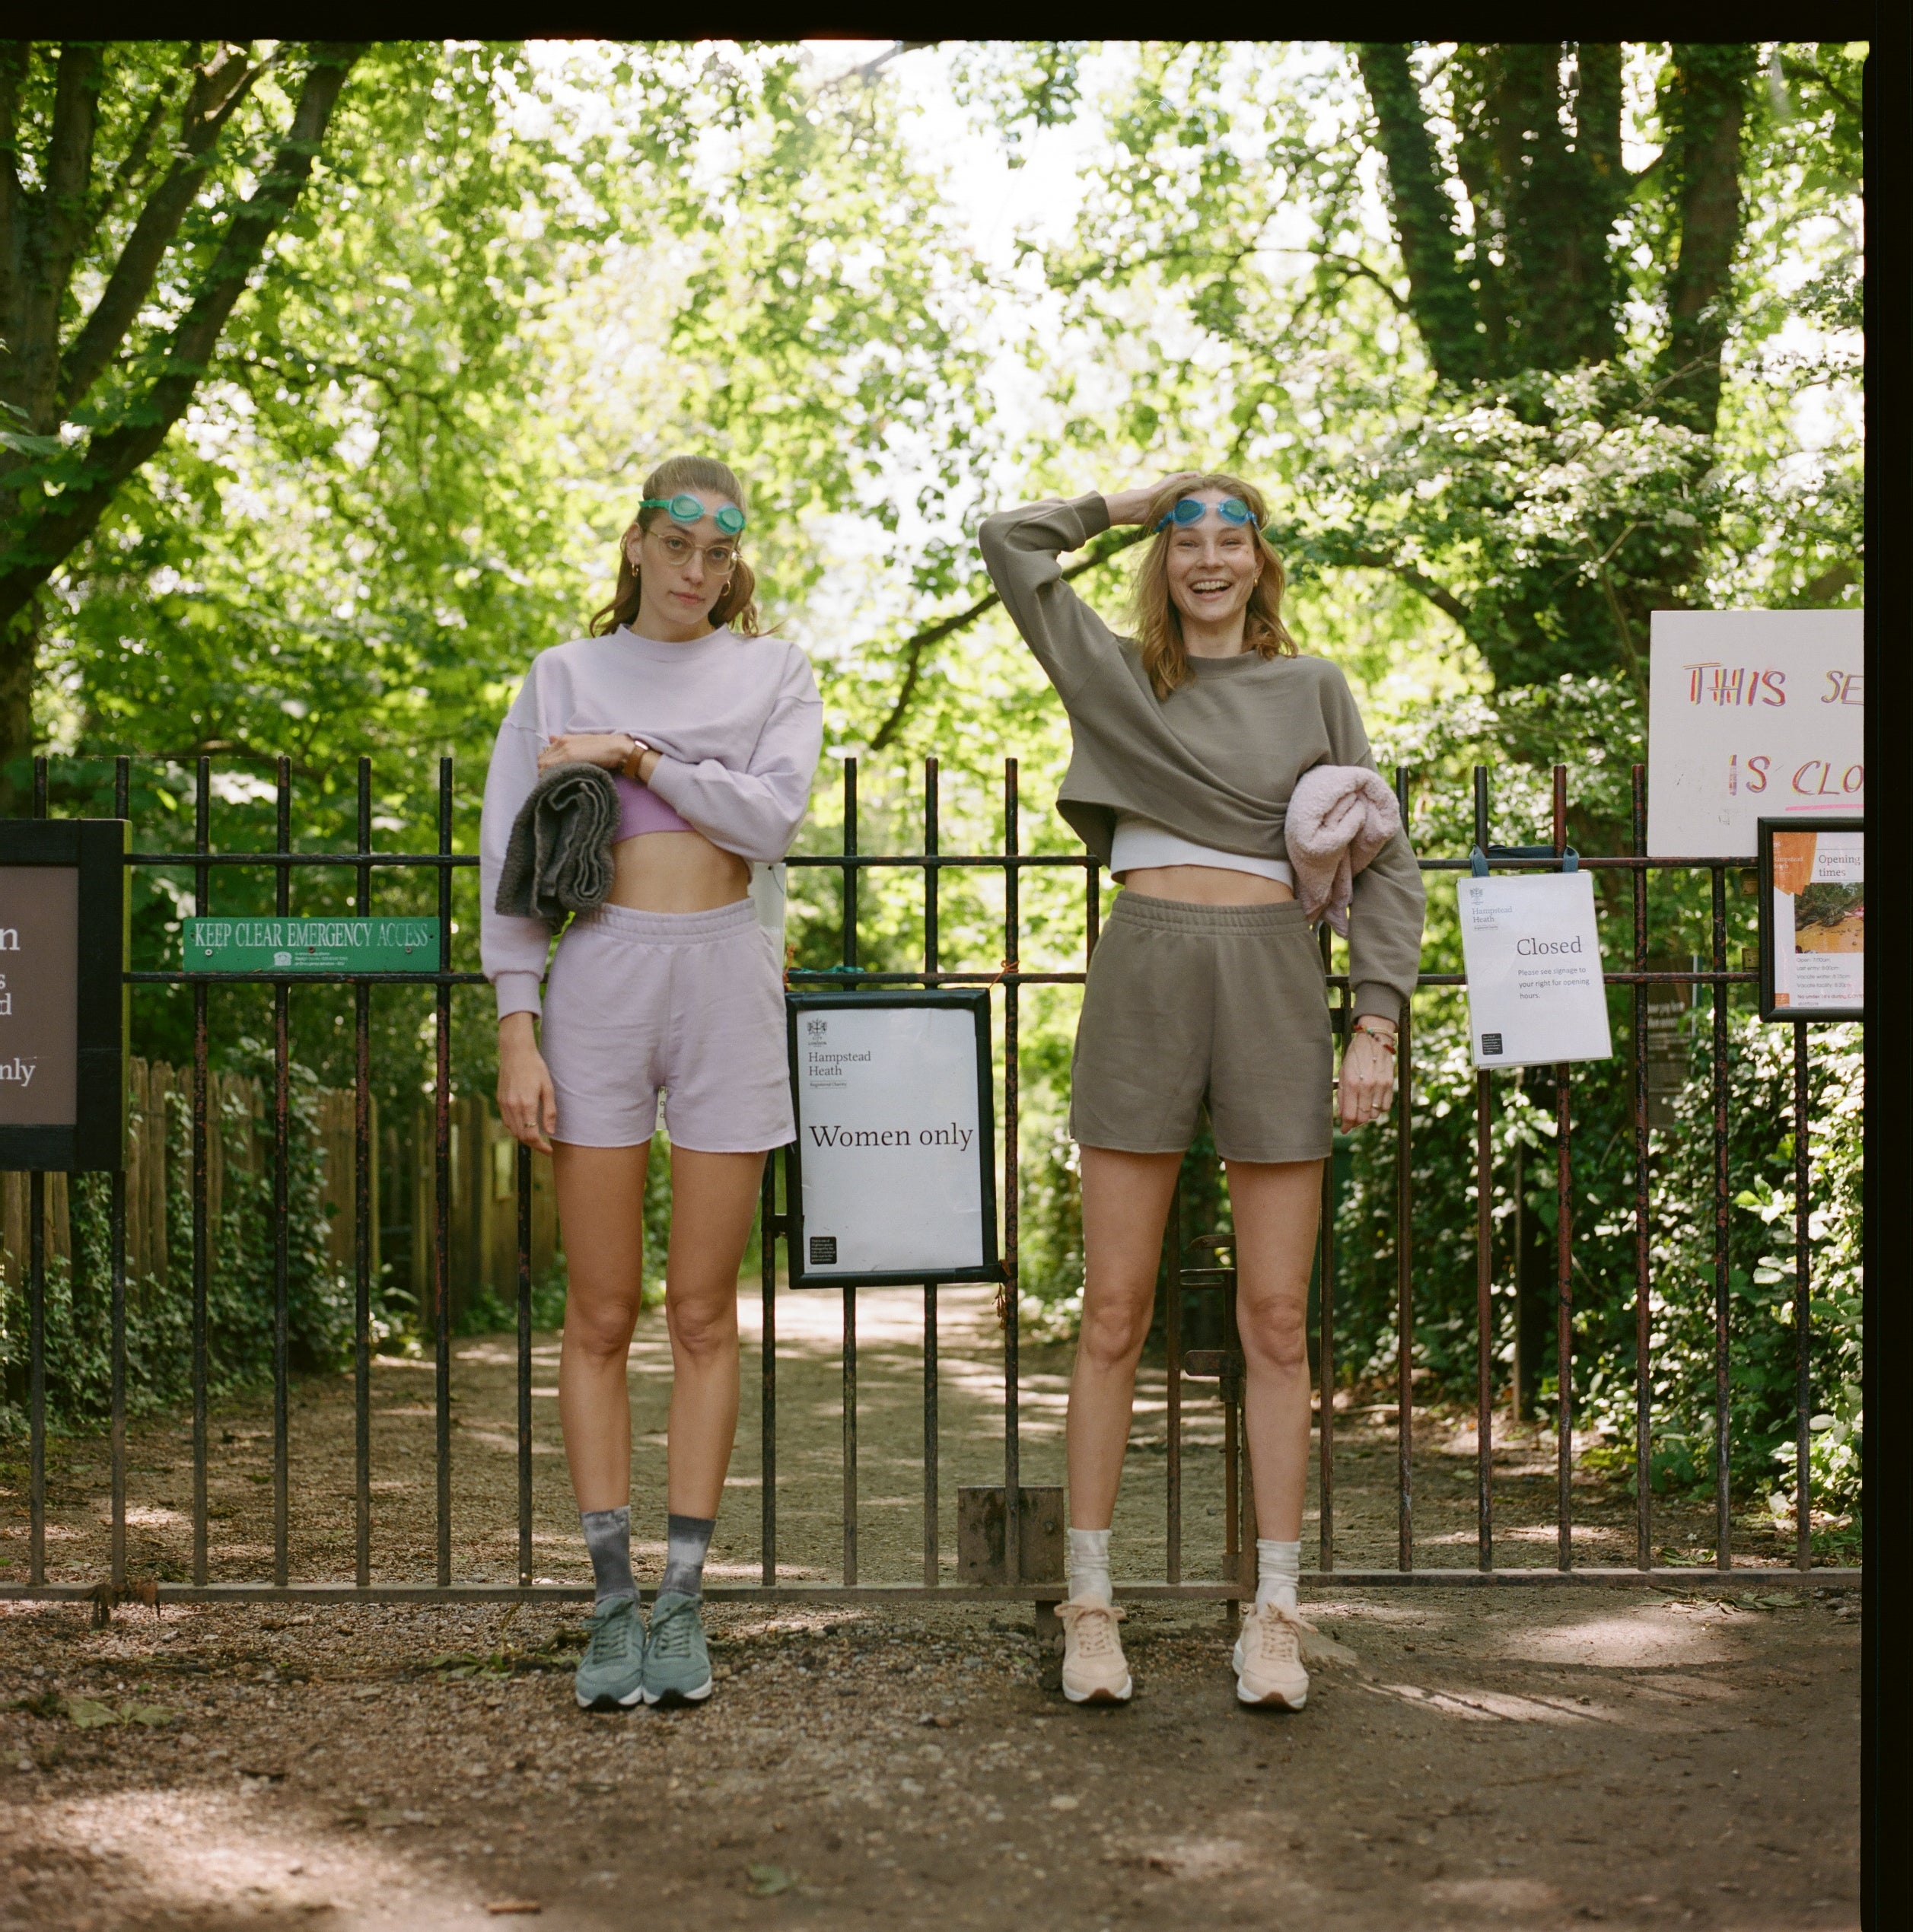 Roscomar Citizens: Female Narratives in Court Sneakers